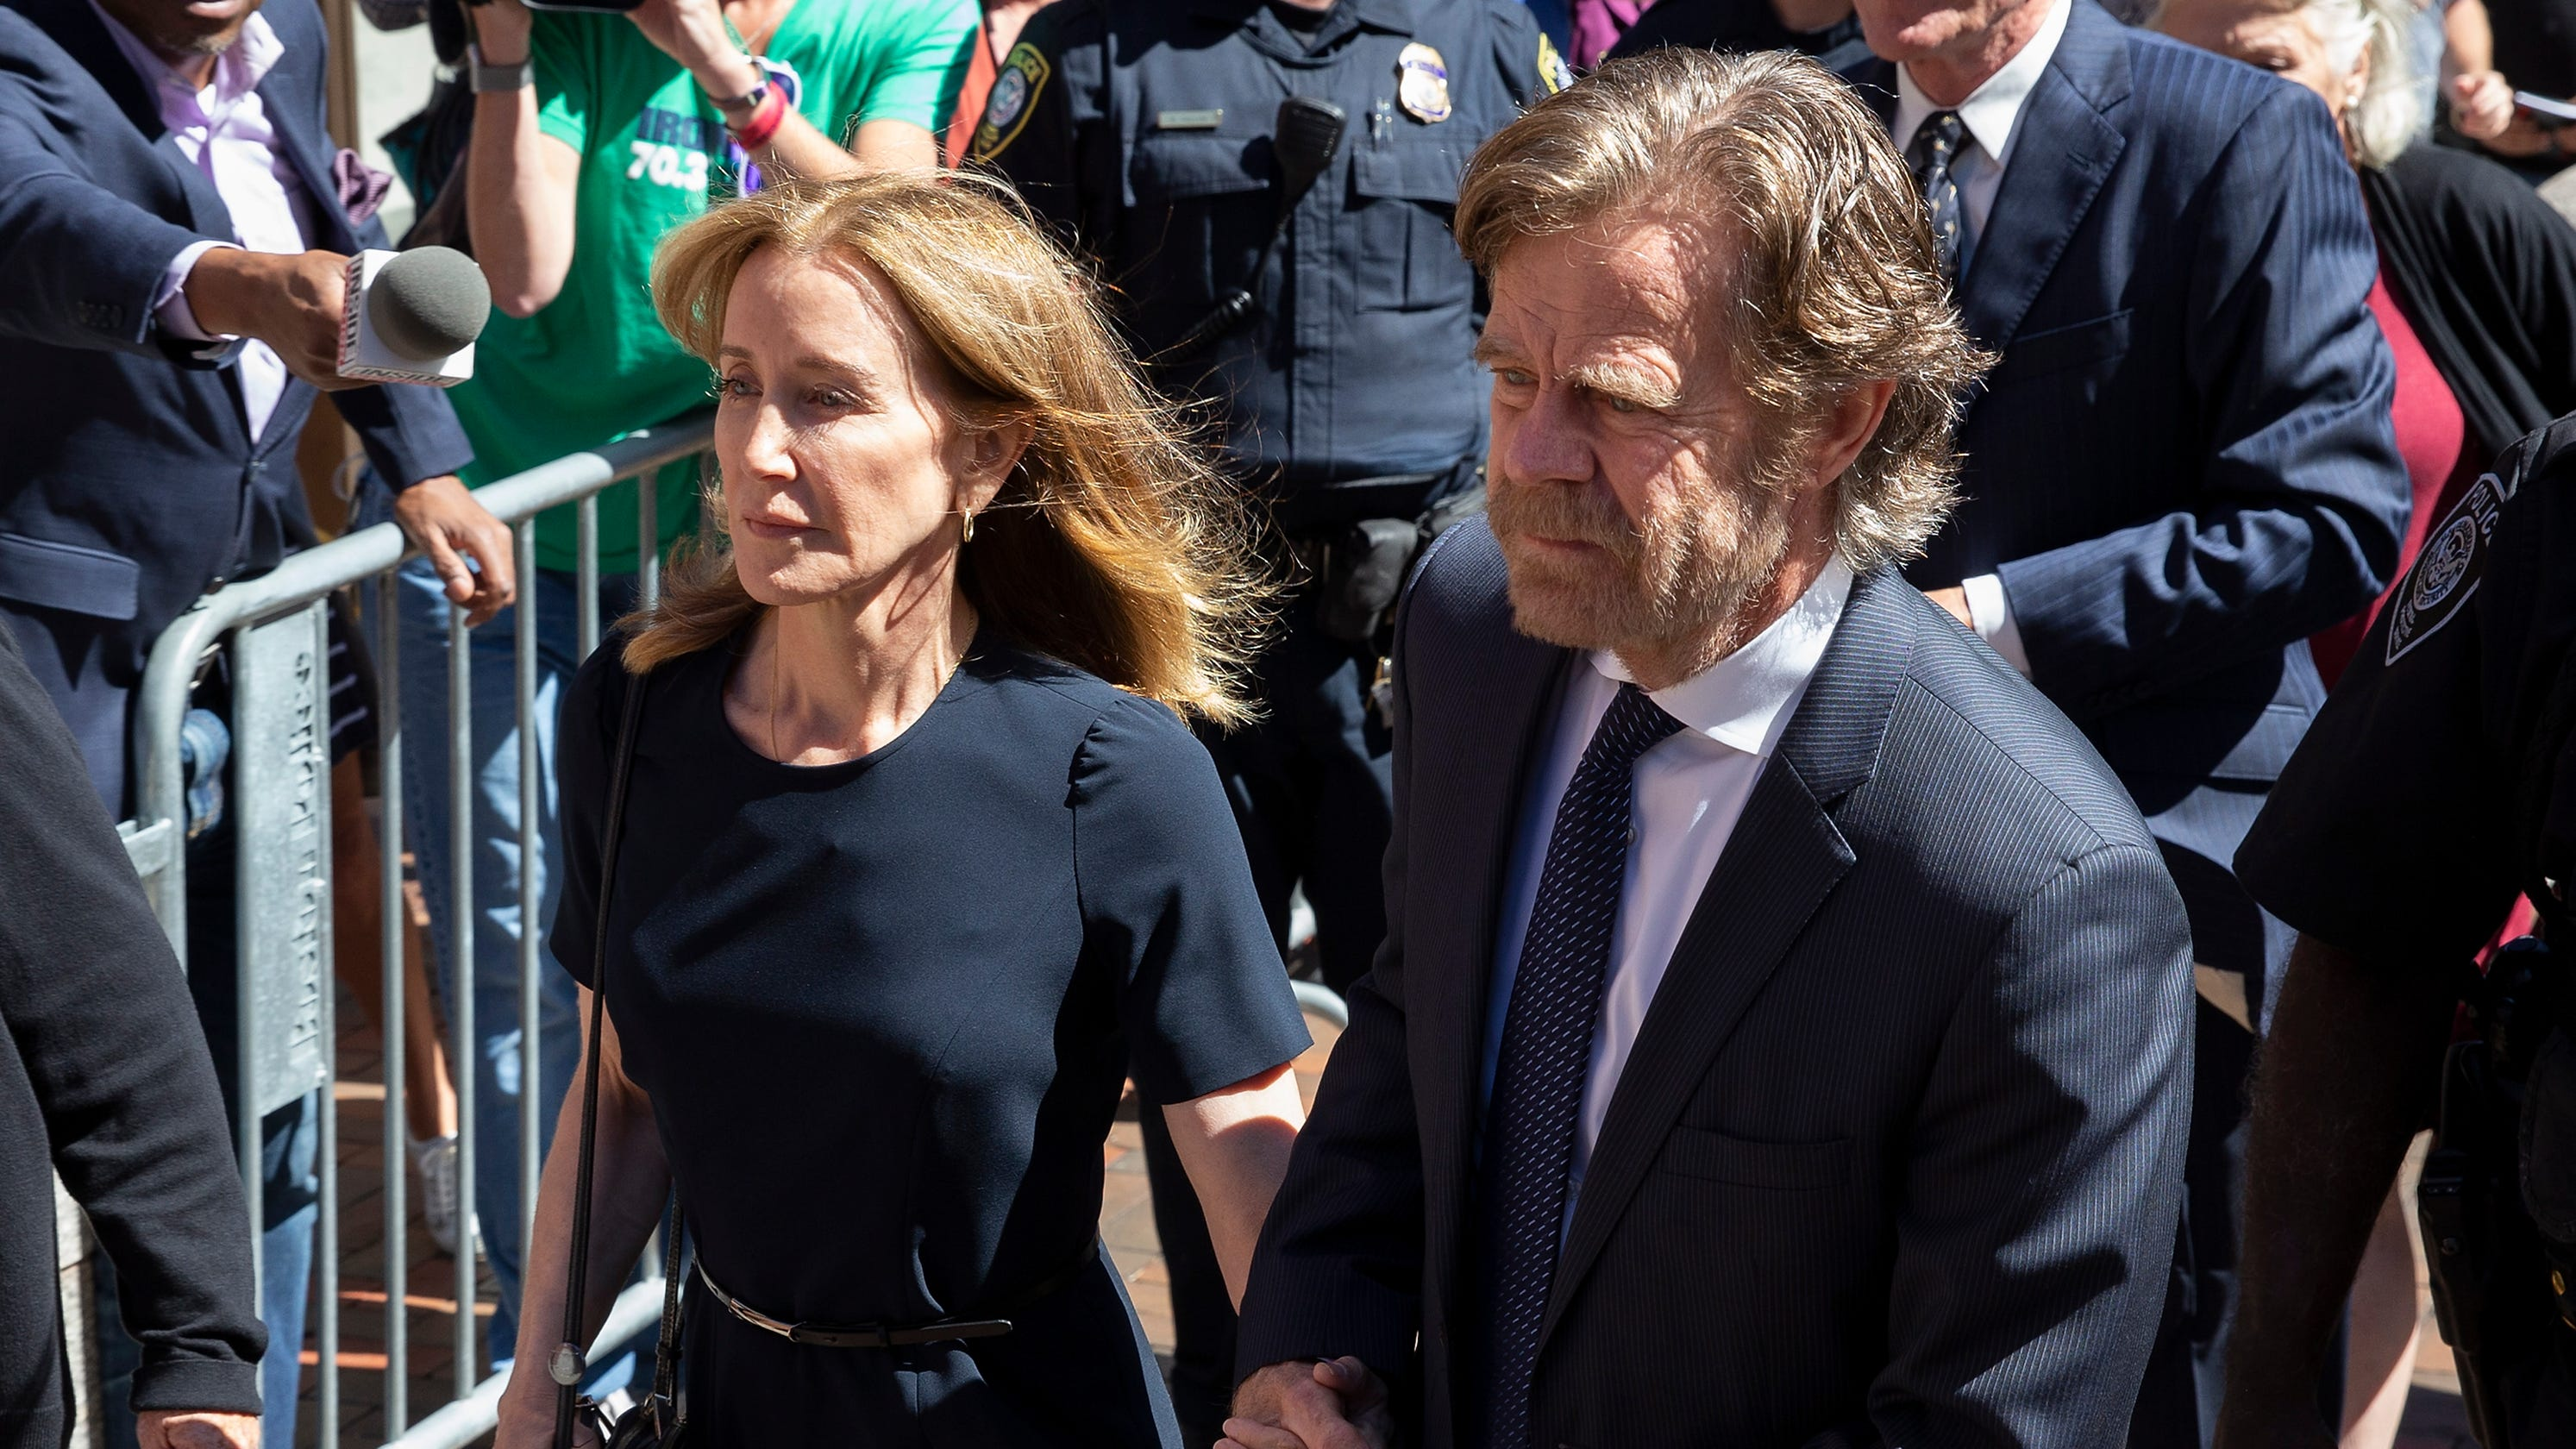 Felicity Huffman reports to prison to begin serving time in college admissions scandal